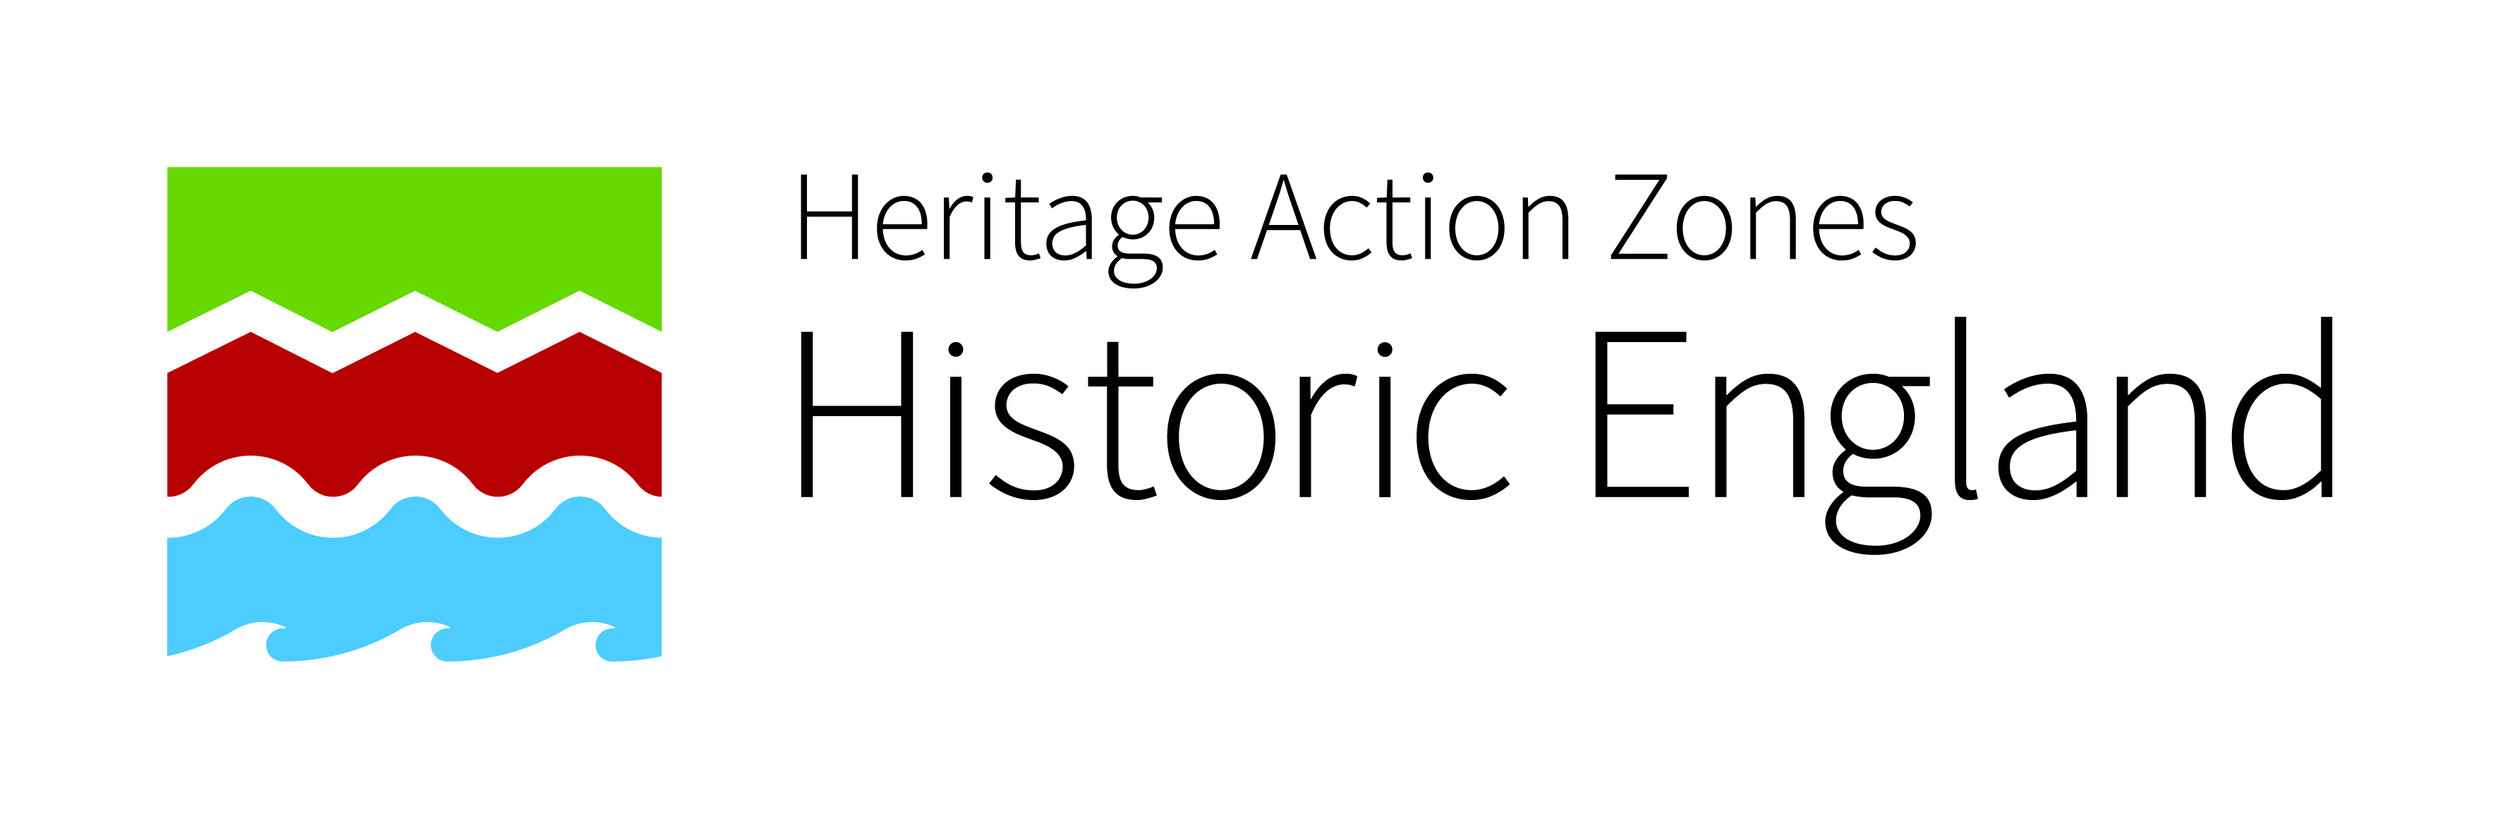 Heritage_Action_Zones_CMYK (002).JPG